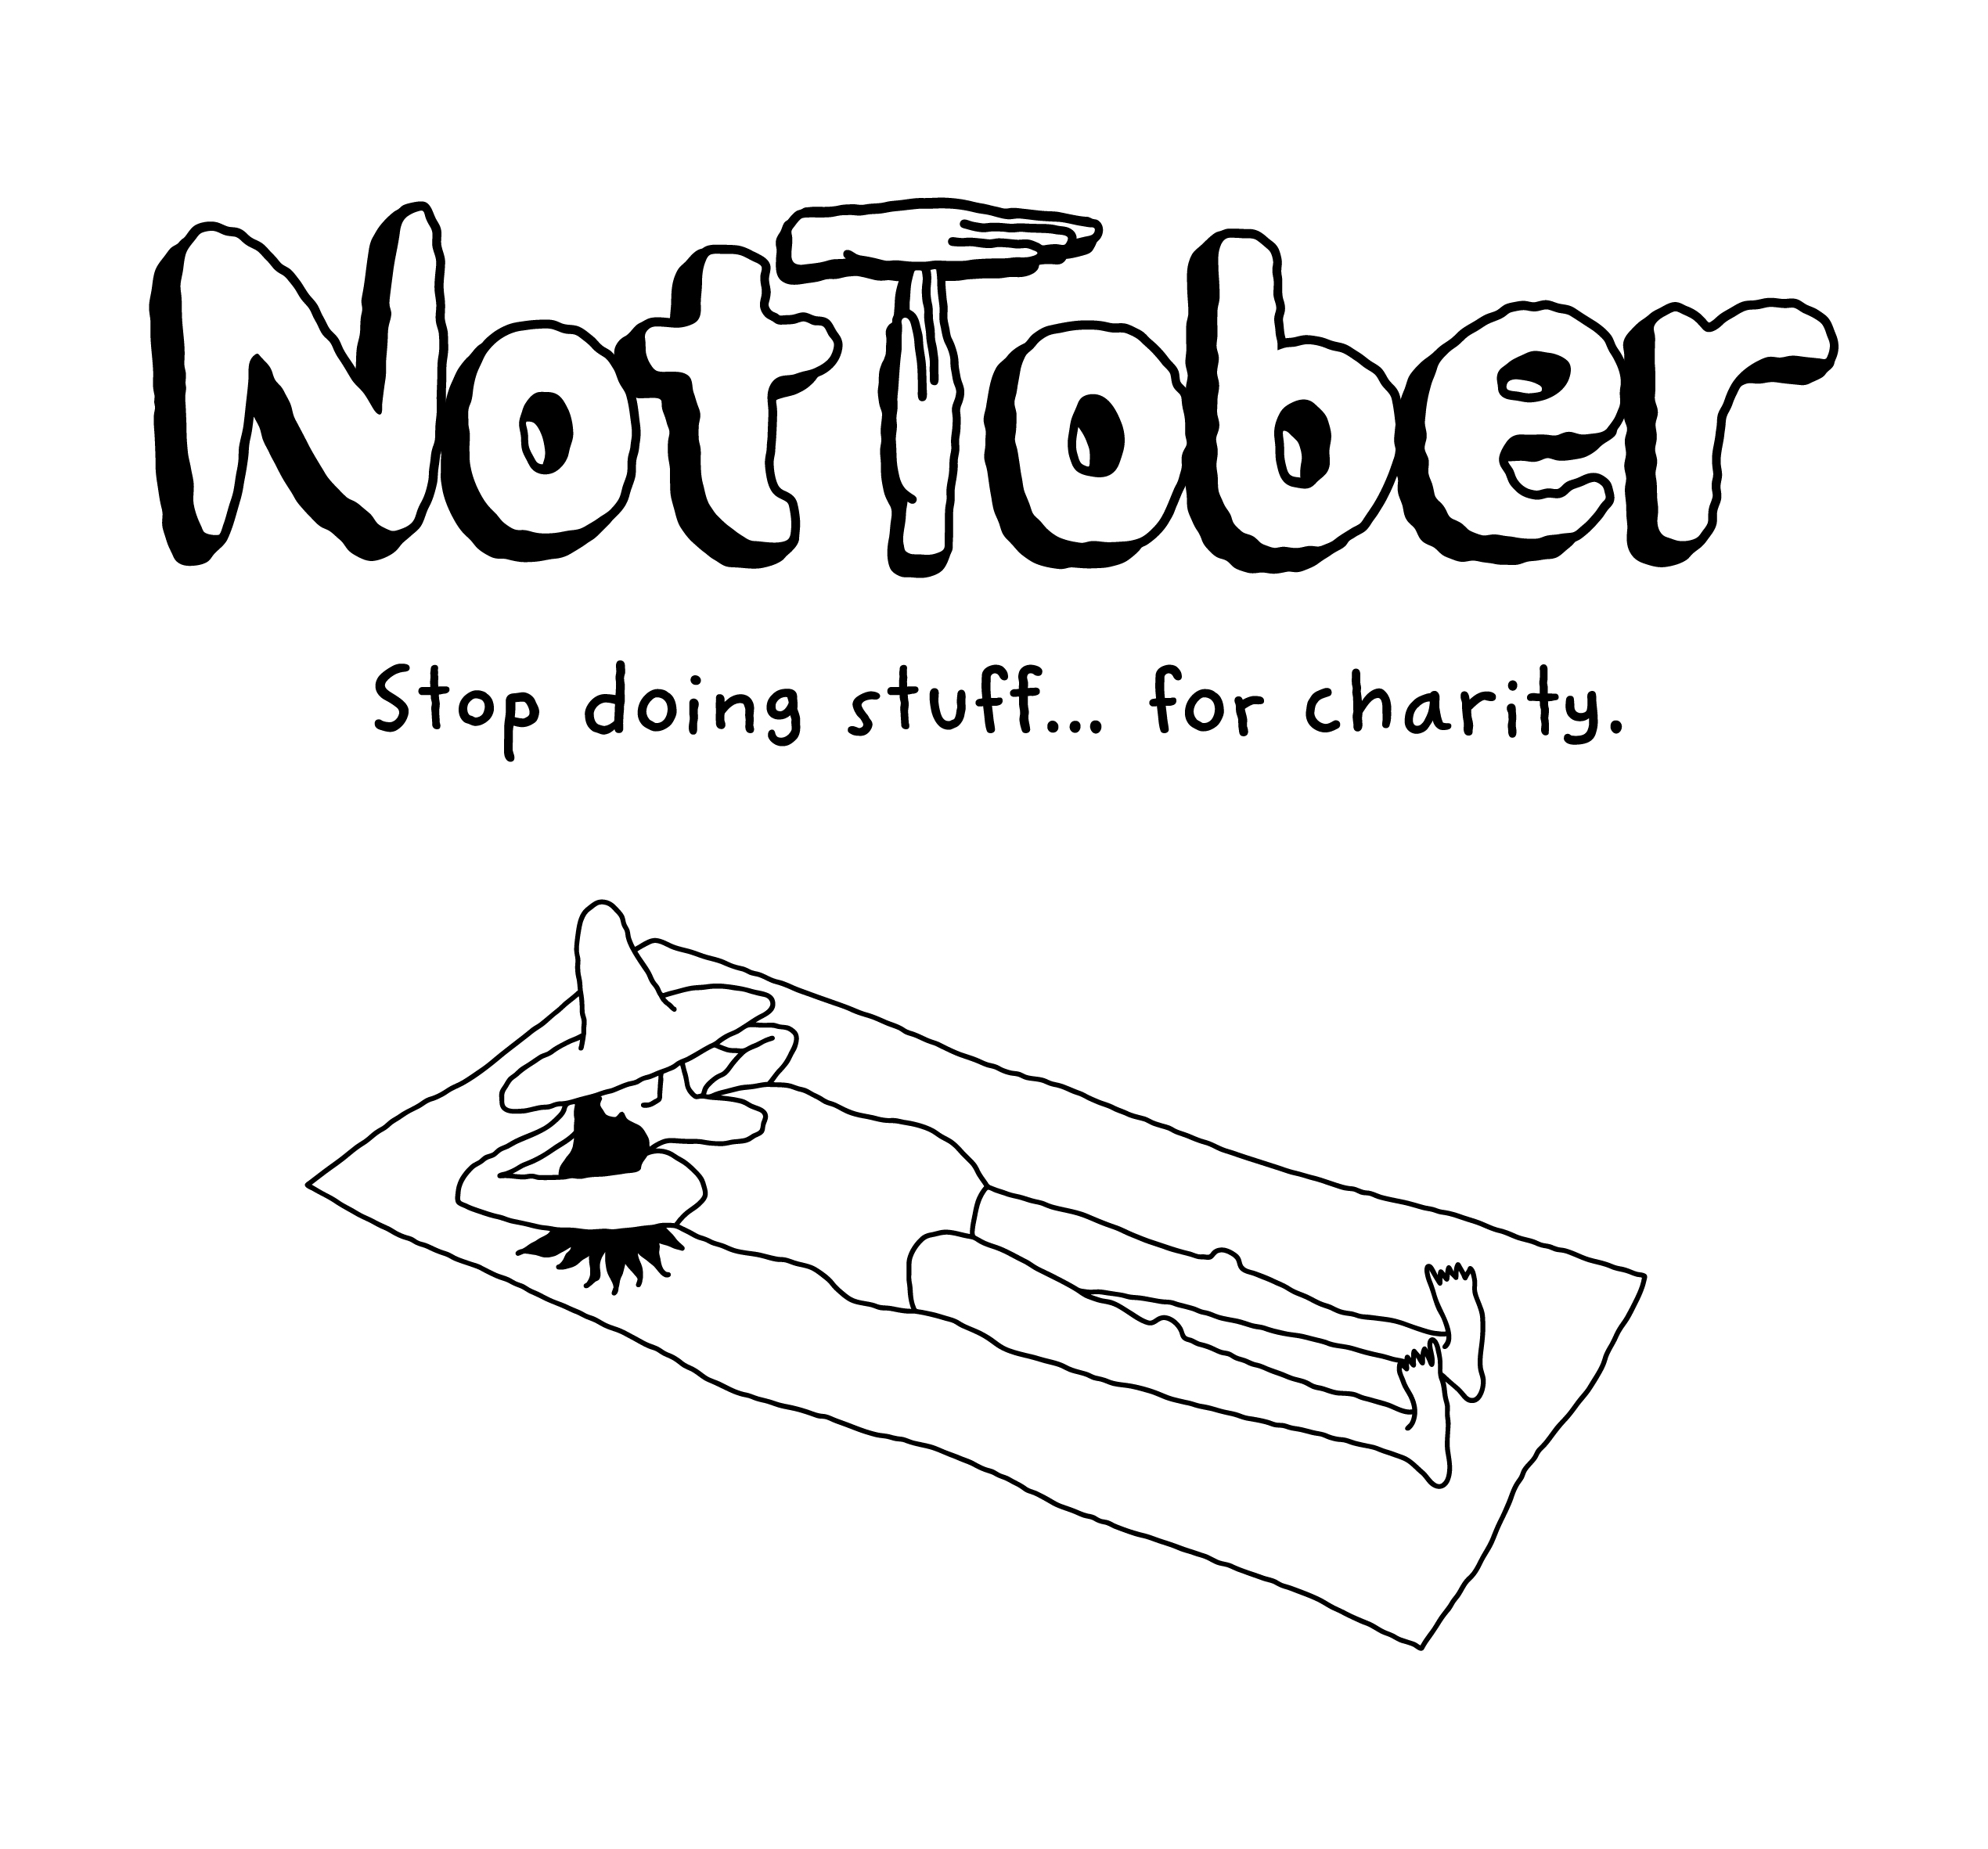 ahm health insurance launches #NotTober – a month where Aussies can stop doing stuff… for charity via Clemenger BBDO, Melbourne